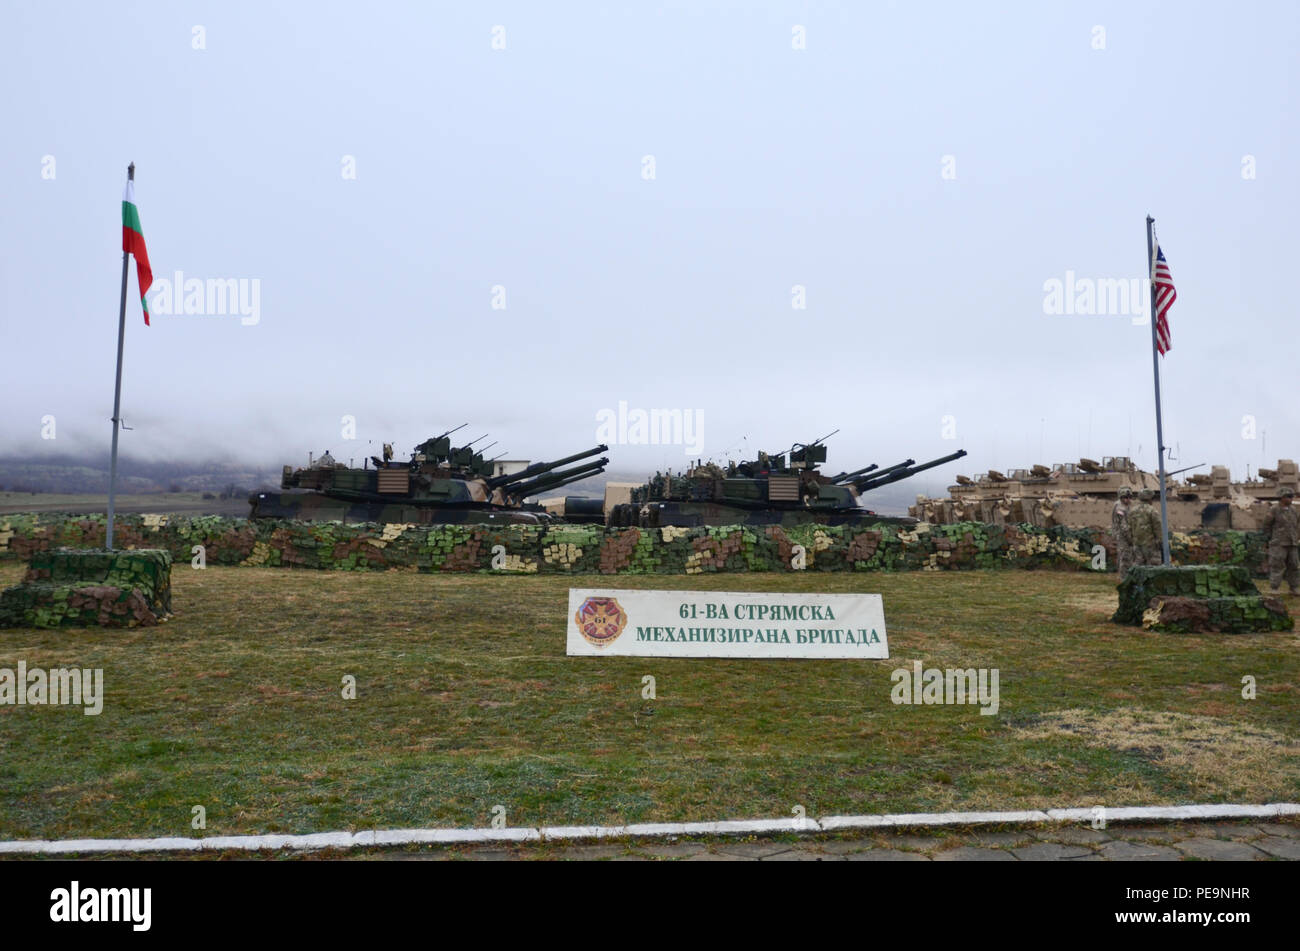 U.S. Army M1A2 System Enhancement Package Version 2 Abrams tanks and Bradley Fighting Vehicles are in formation behind the Bulgarian and U.S. flags during the closing ceremony of Exercise Peace Sentinel at Novo Selo Training Center, Bulgaria, Nov. 24, 2015. (U.S. Army photo by Staff Sgt. Steven M. Colvin/Released) - Stock Image